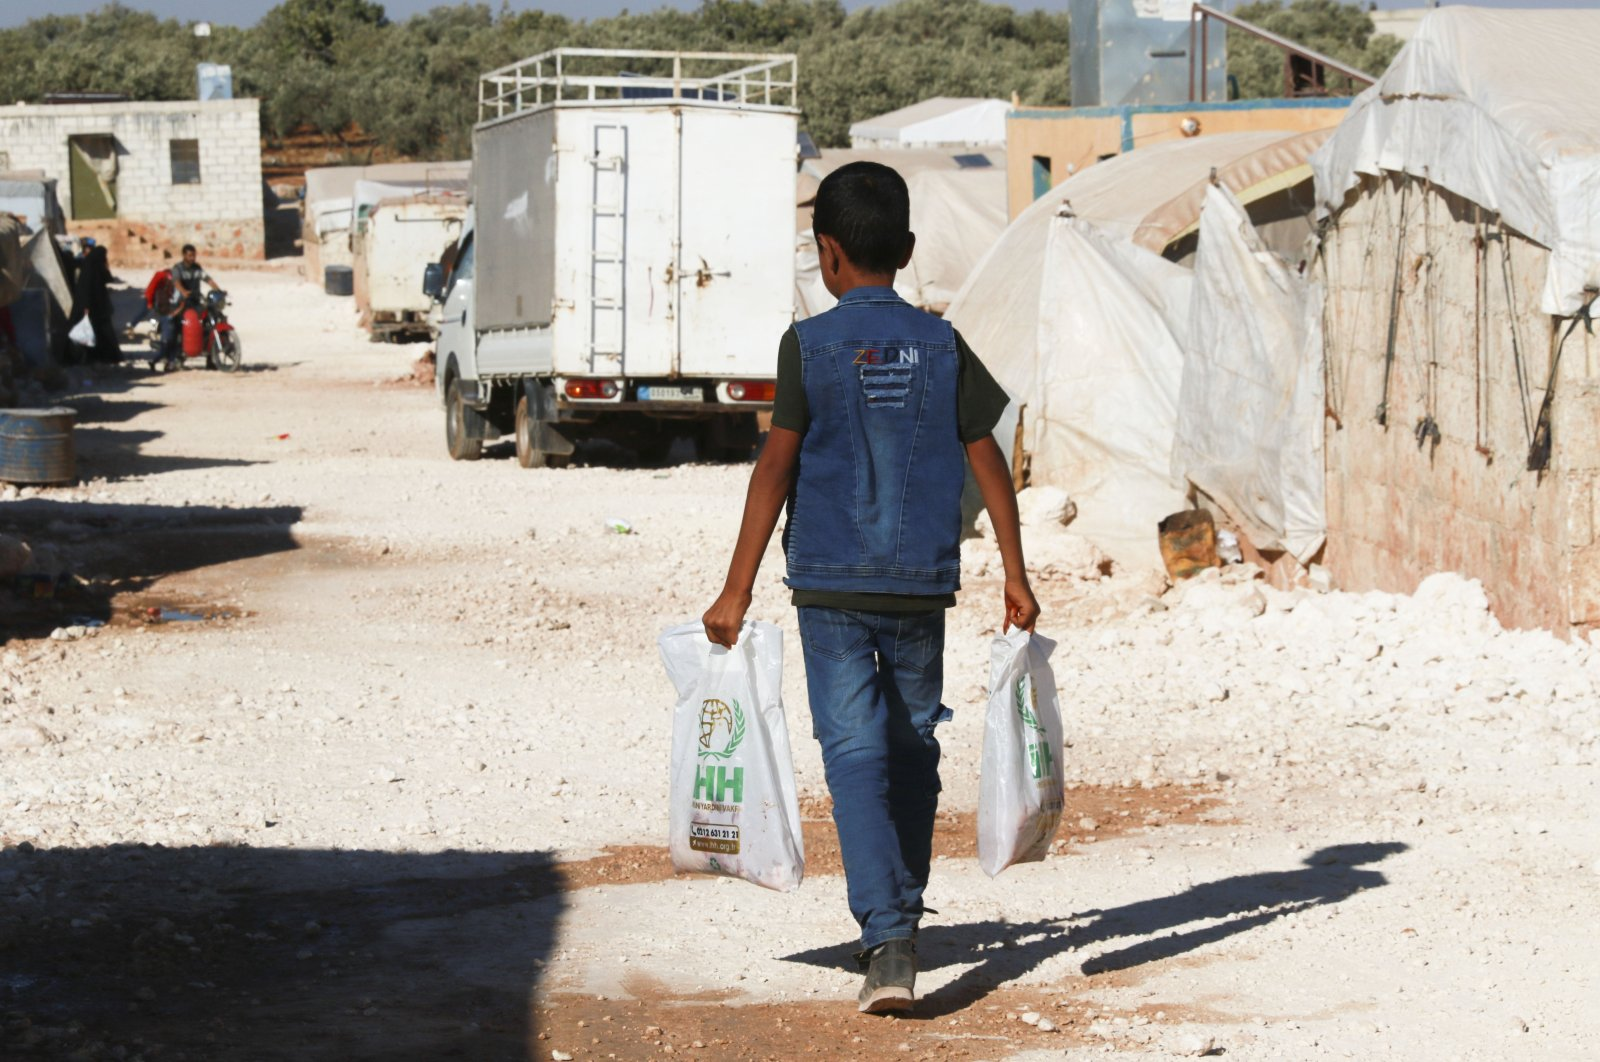 A Syrian boy carries aid received from Turkey's Humanitarian Relief Foundation (IHH) in the northwestern Idlib province of Syria, Aug. 1, 2020. (AA Photo)